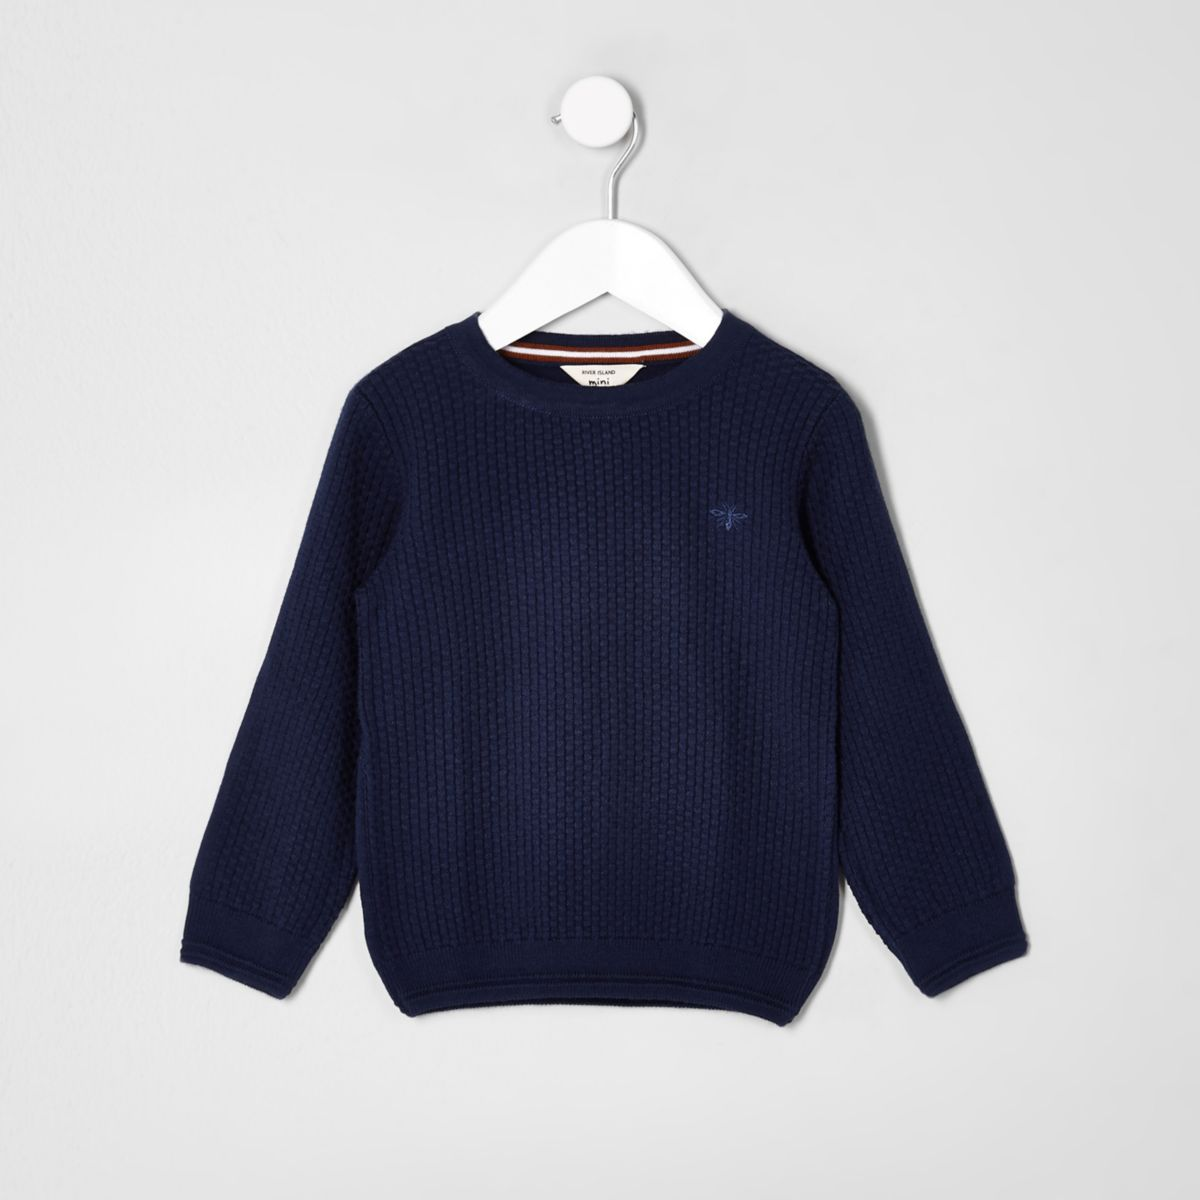 Mini boys blue knit wasp embroidered sweater